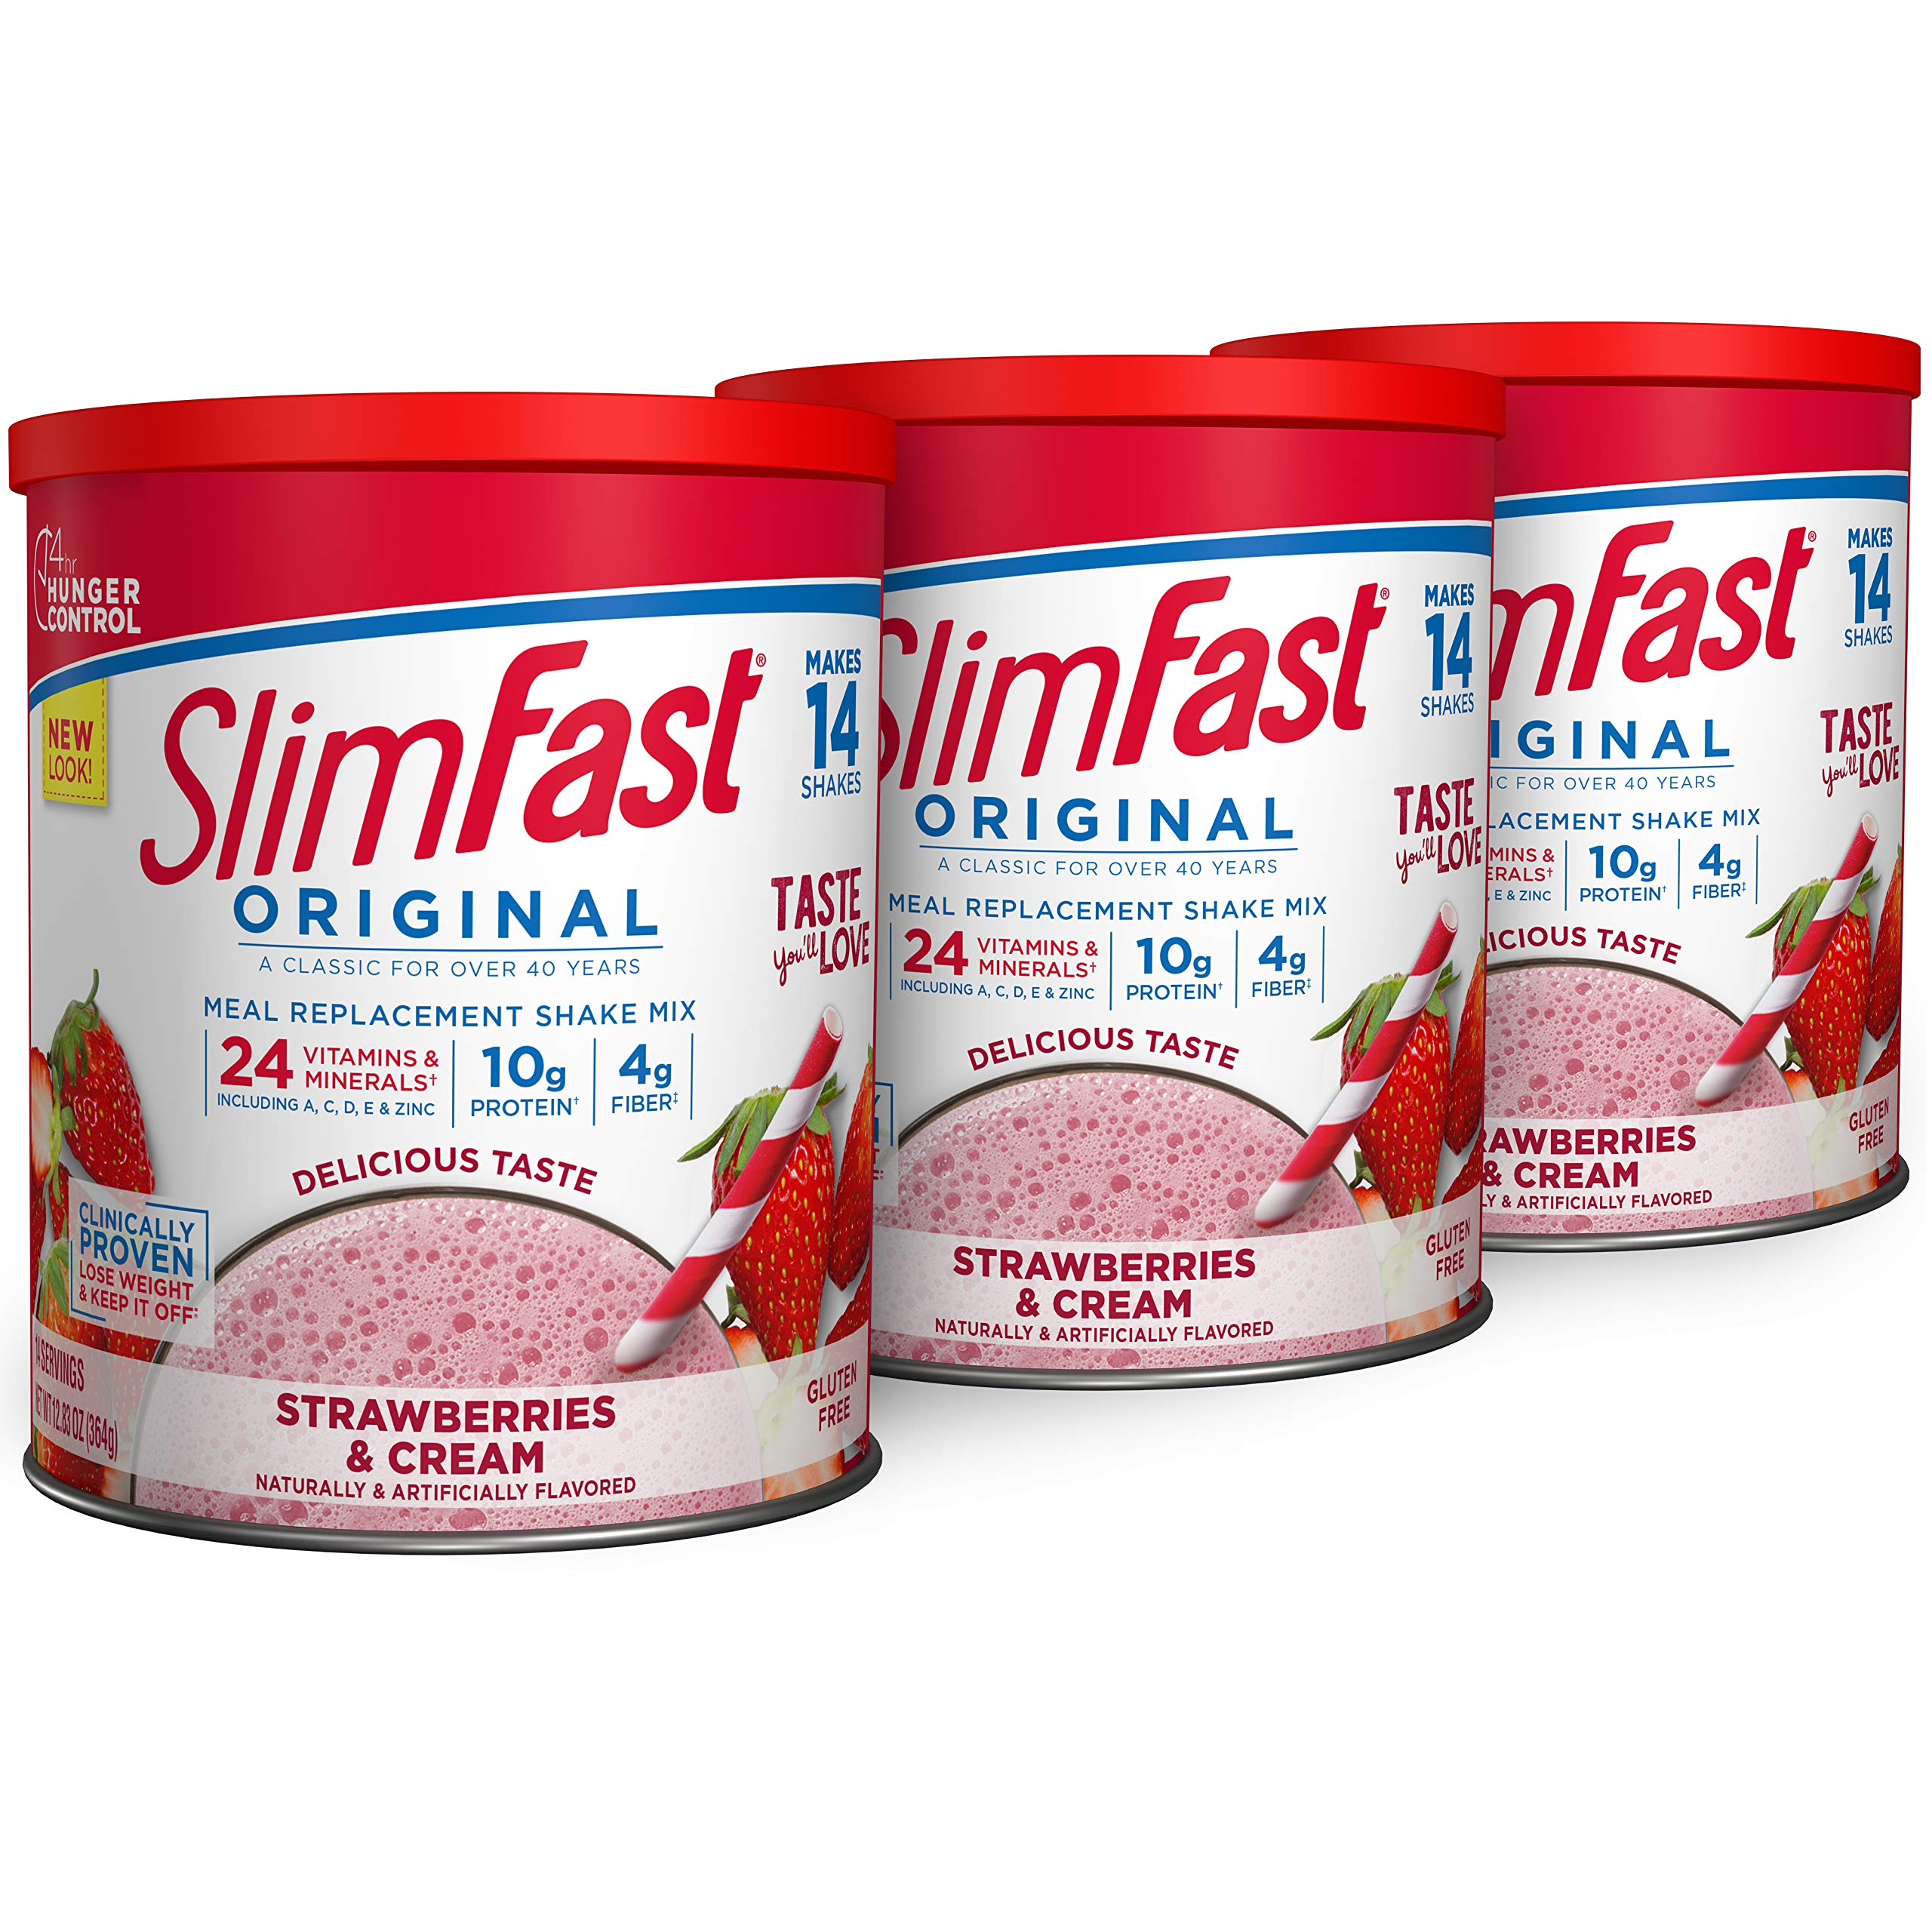 SlimFast Original Strawberries & Cream Meal Replacement Shake Mix – Weight Loss Powder – 12.83 oz. – 14 servings - Pack of 3